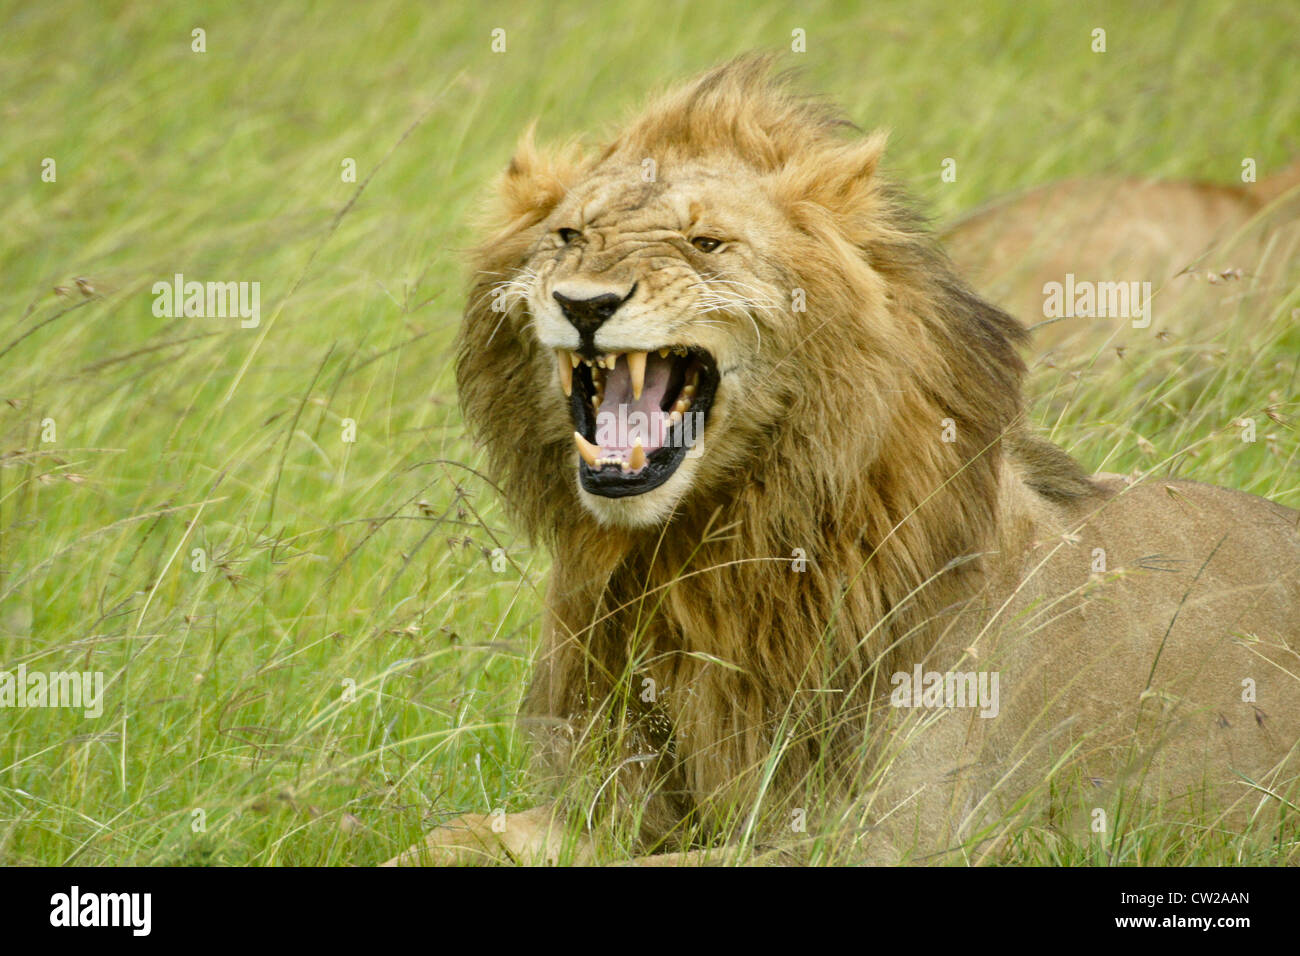 Male African lion making flehman face, Masai Mara, Kenya - Stock Image